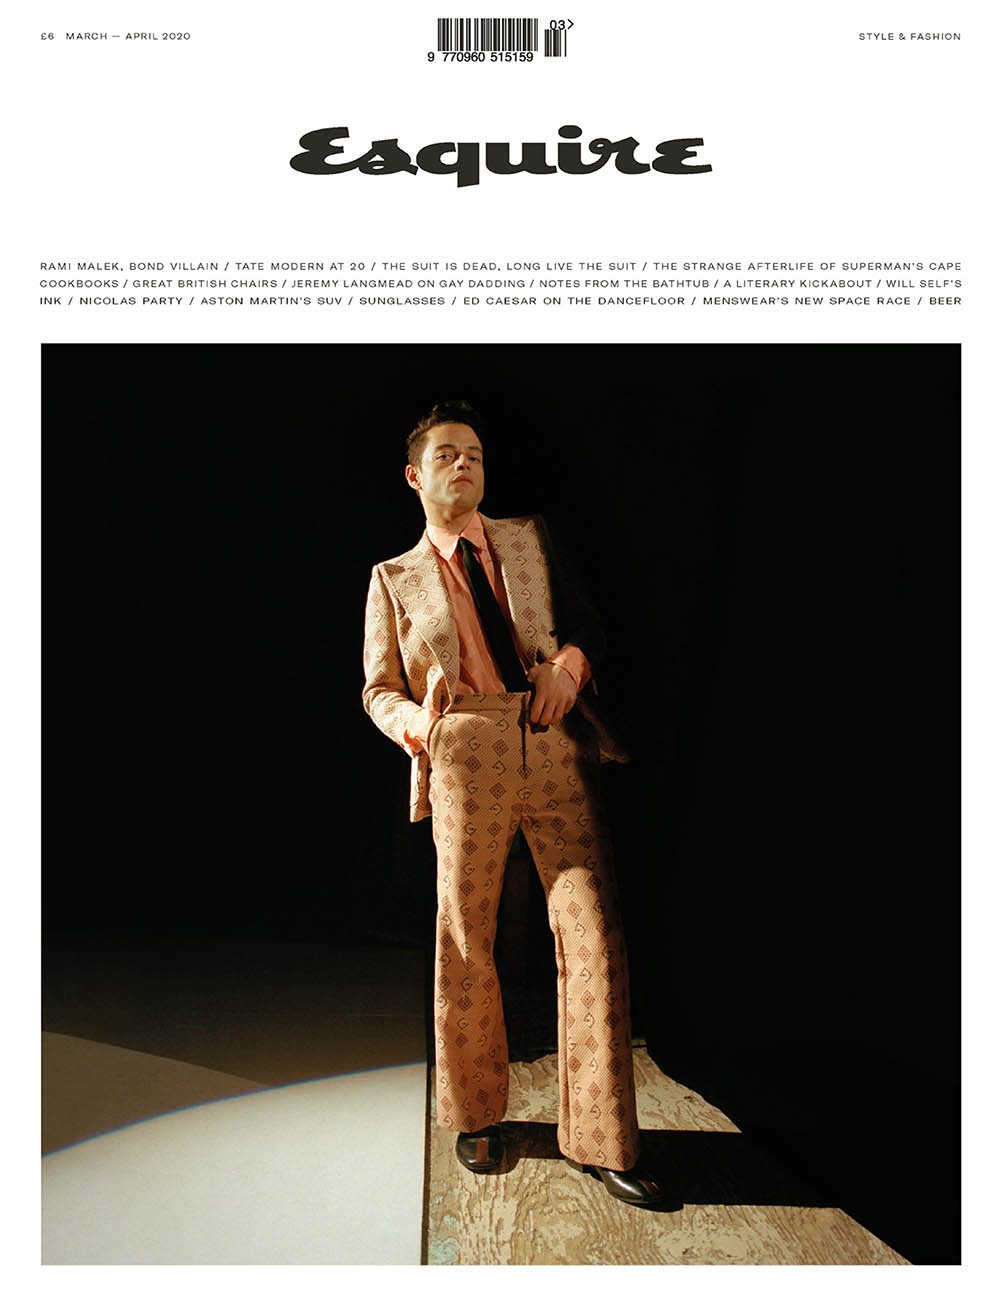 Rami Malek covers Esquire UK March/April 2020 by Dexter Navy